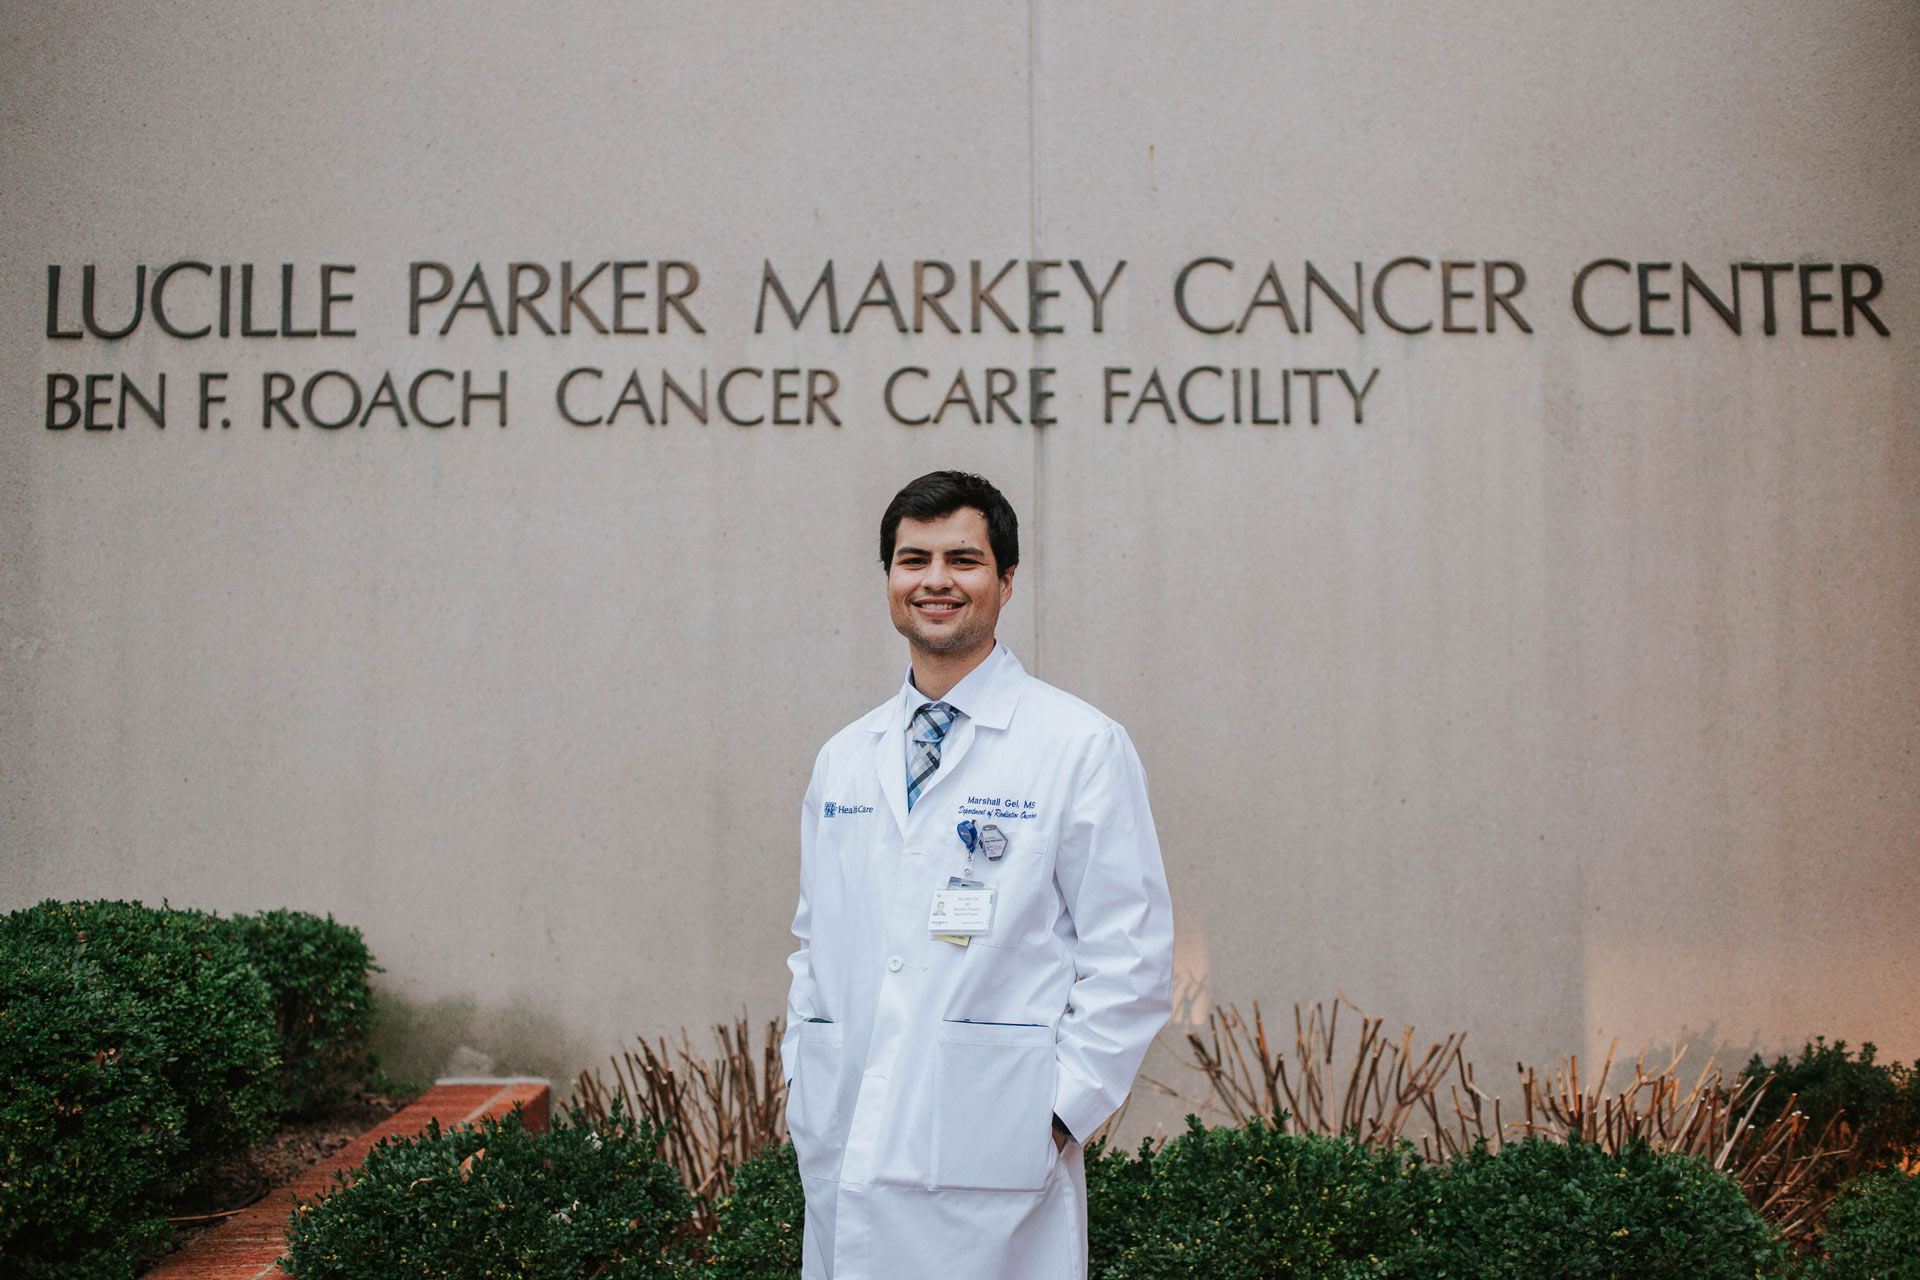 Marshall stands in front of the Lucille Parker Markey Cancer Center with his hands in his coat pocket, smiling broadly.